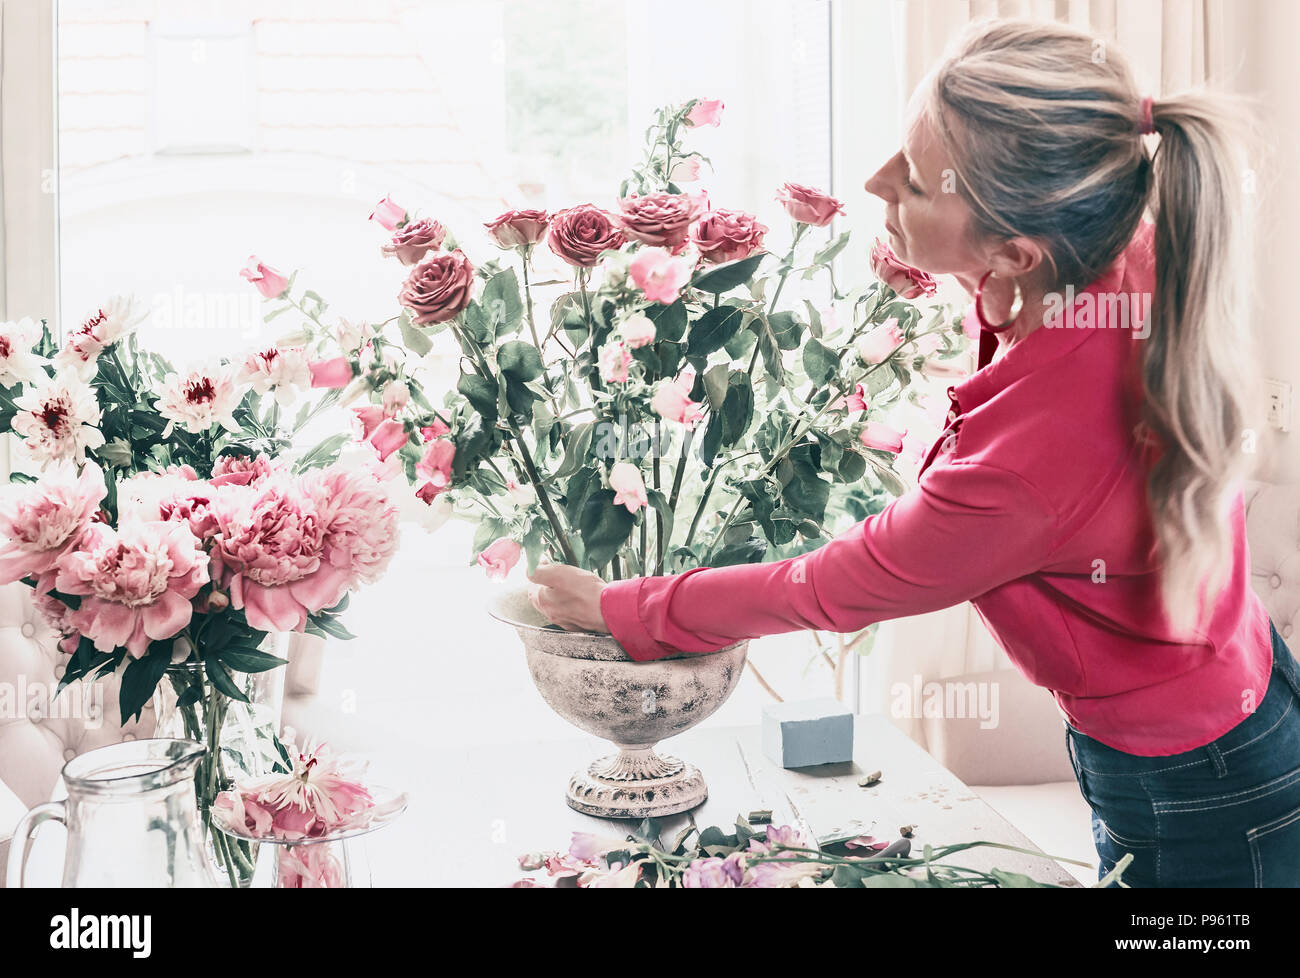 Florist Women In Red Shirt Make Beautiful Big Festive Event Classical Bouquet With Roses And Other Flowers In Urn Vase On Table At Window Lifestyle Stock Photo Alamy